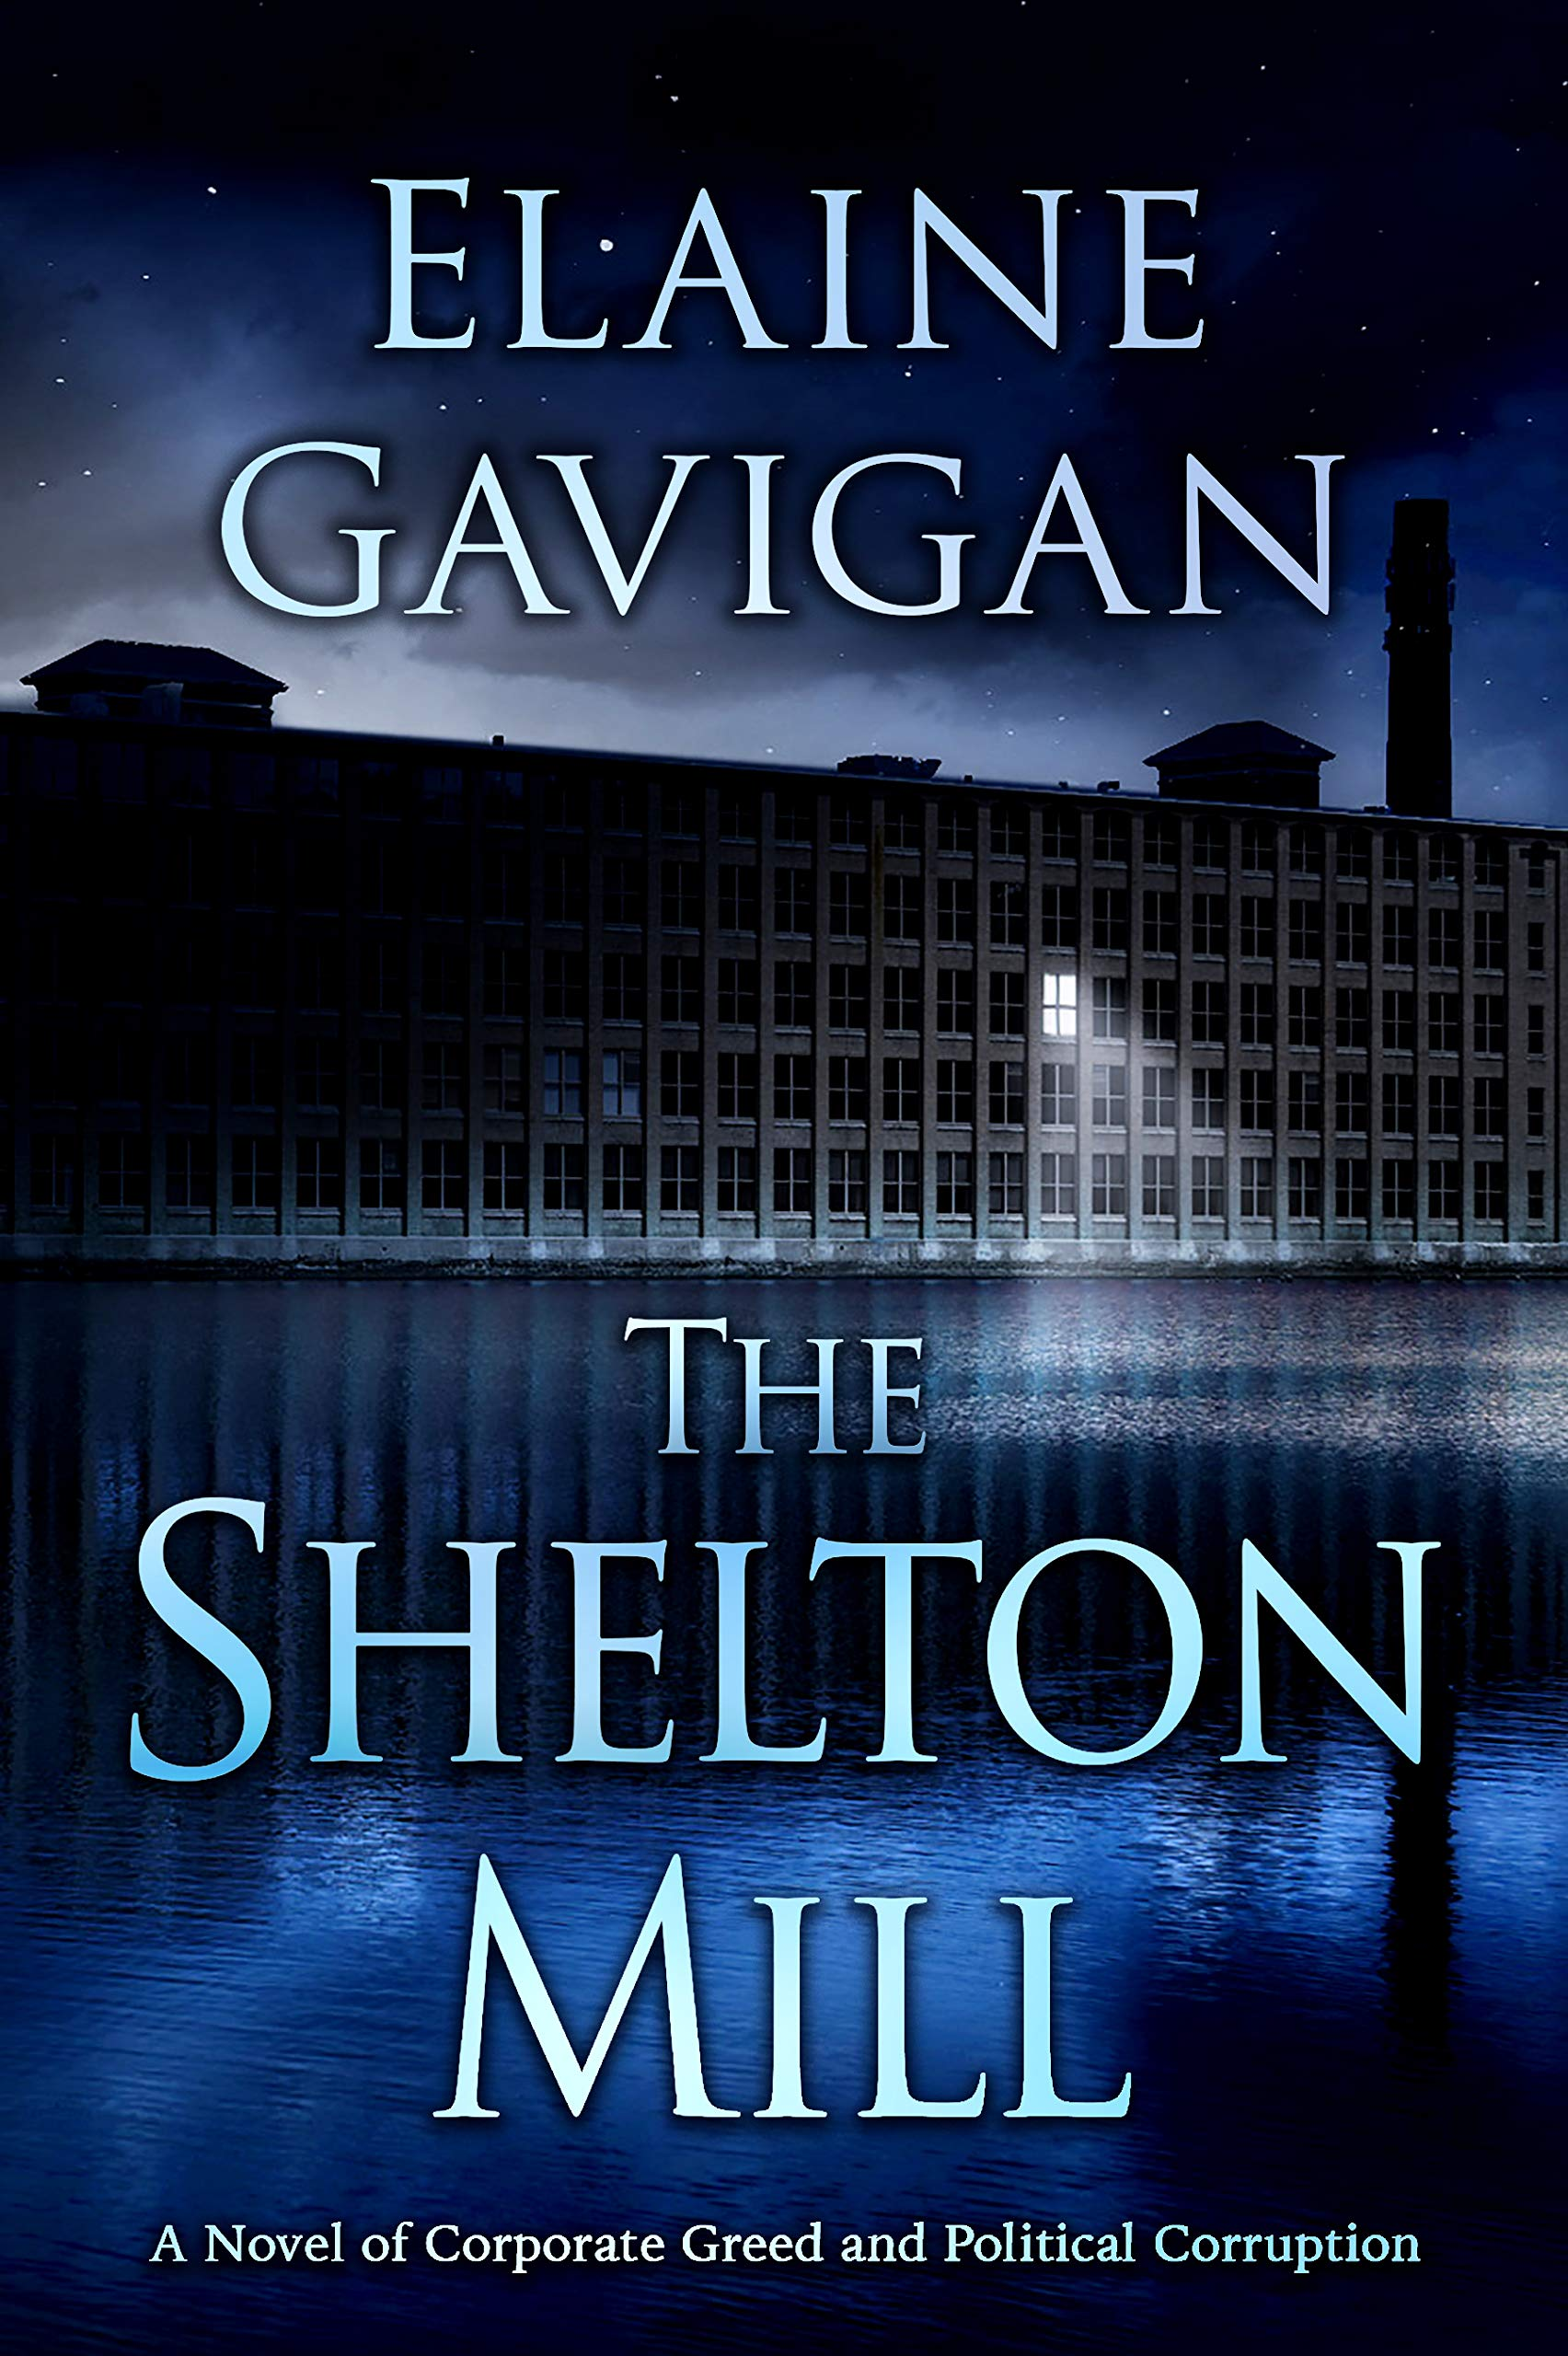 The Shelton Mill: A Novel of Corporate Greed and Political Corruption